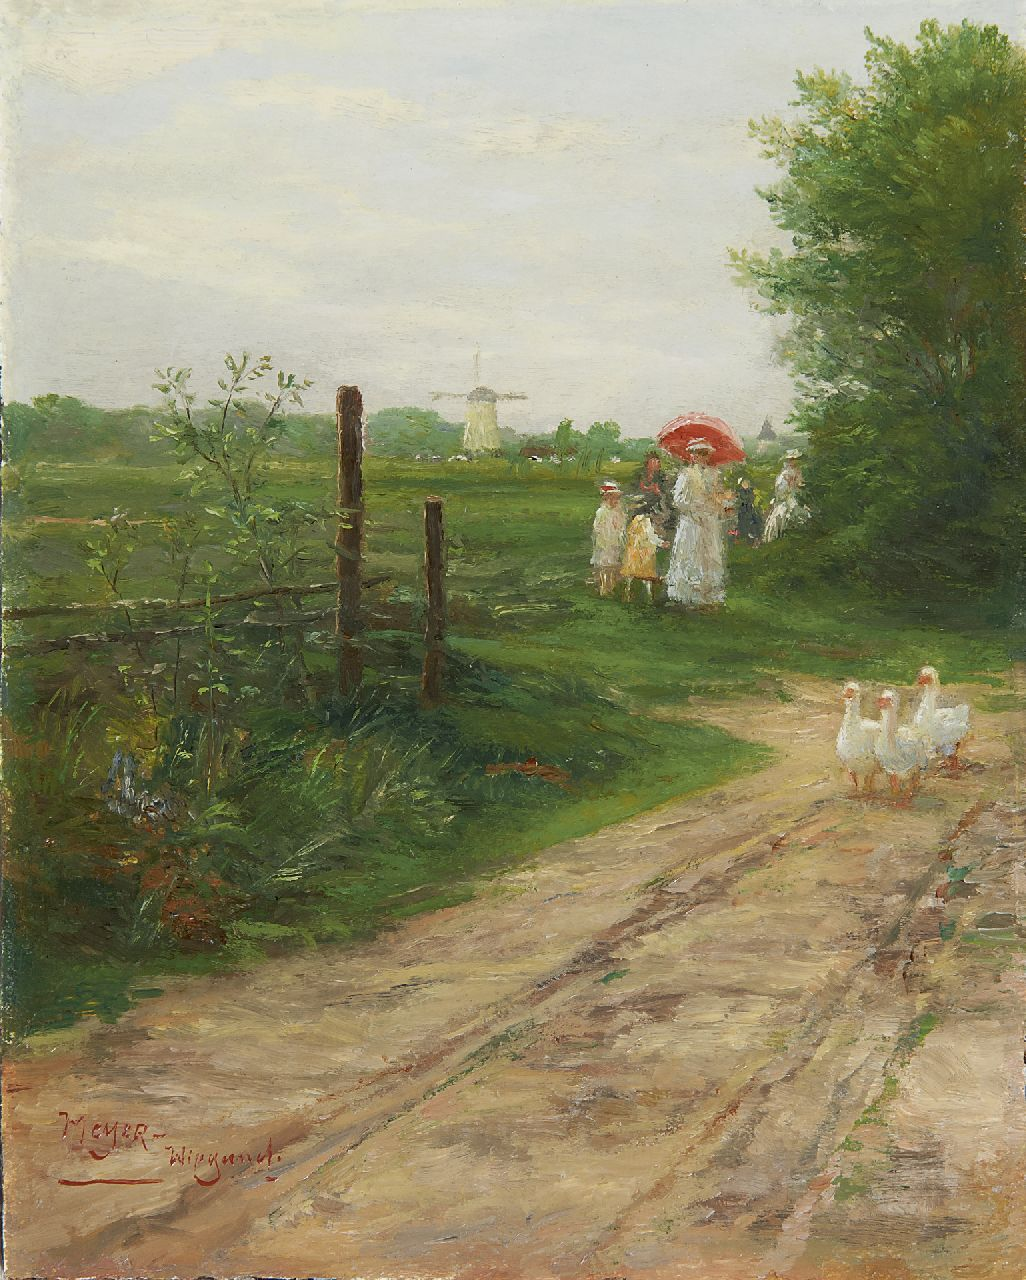 Meyer-Wiegand R.D.  | Rolf Dieter Meyer-Wiegand, The Sunday stroll, oil on panel 19.9 x 15.9 cm, signed l.l.